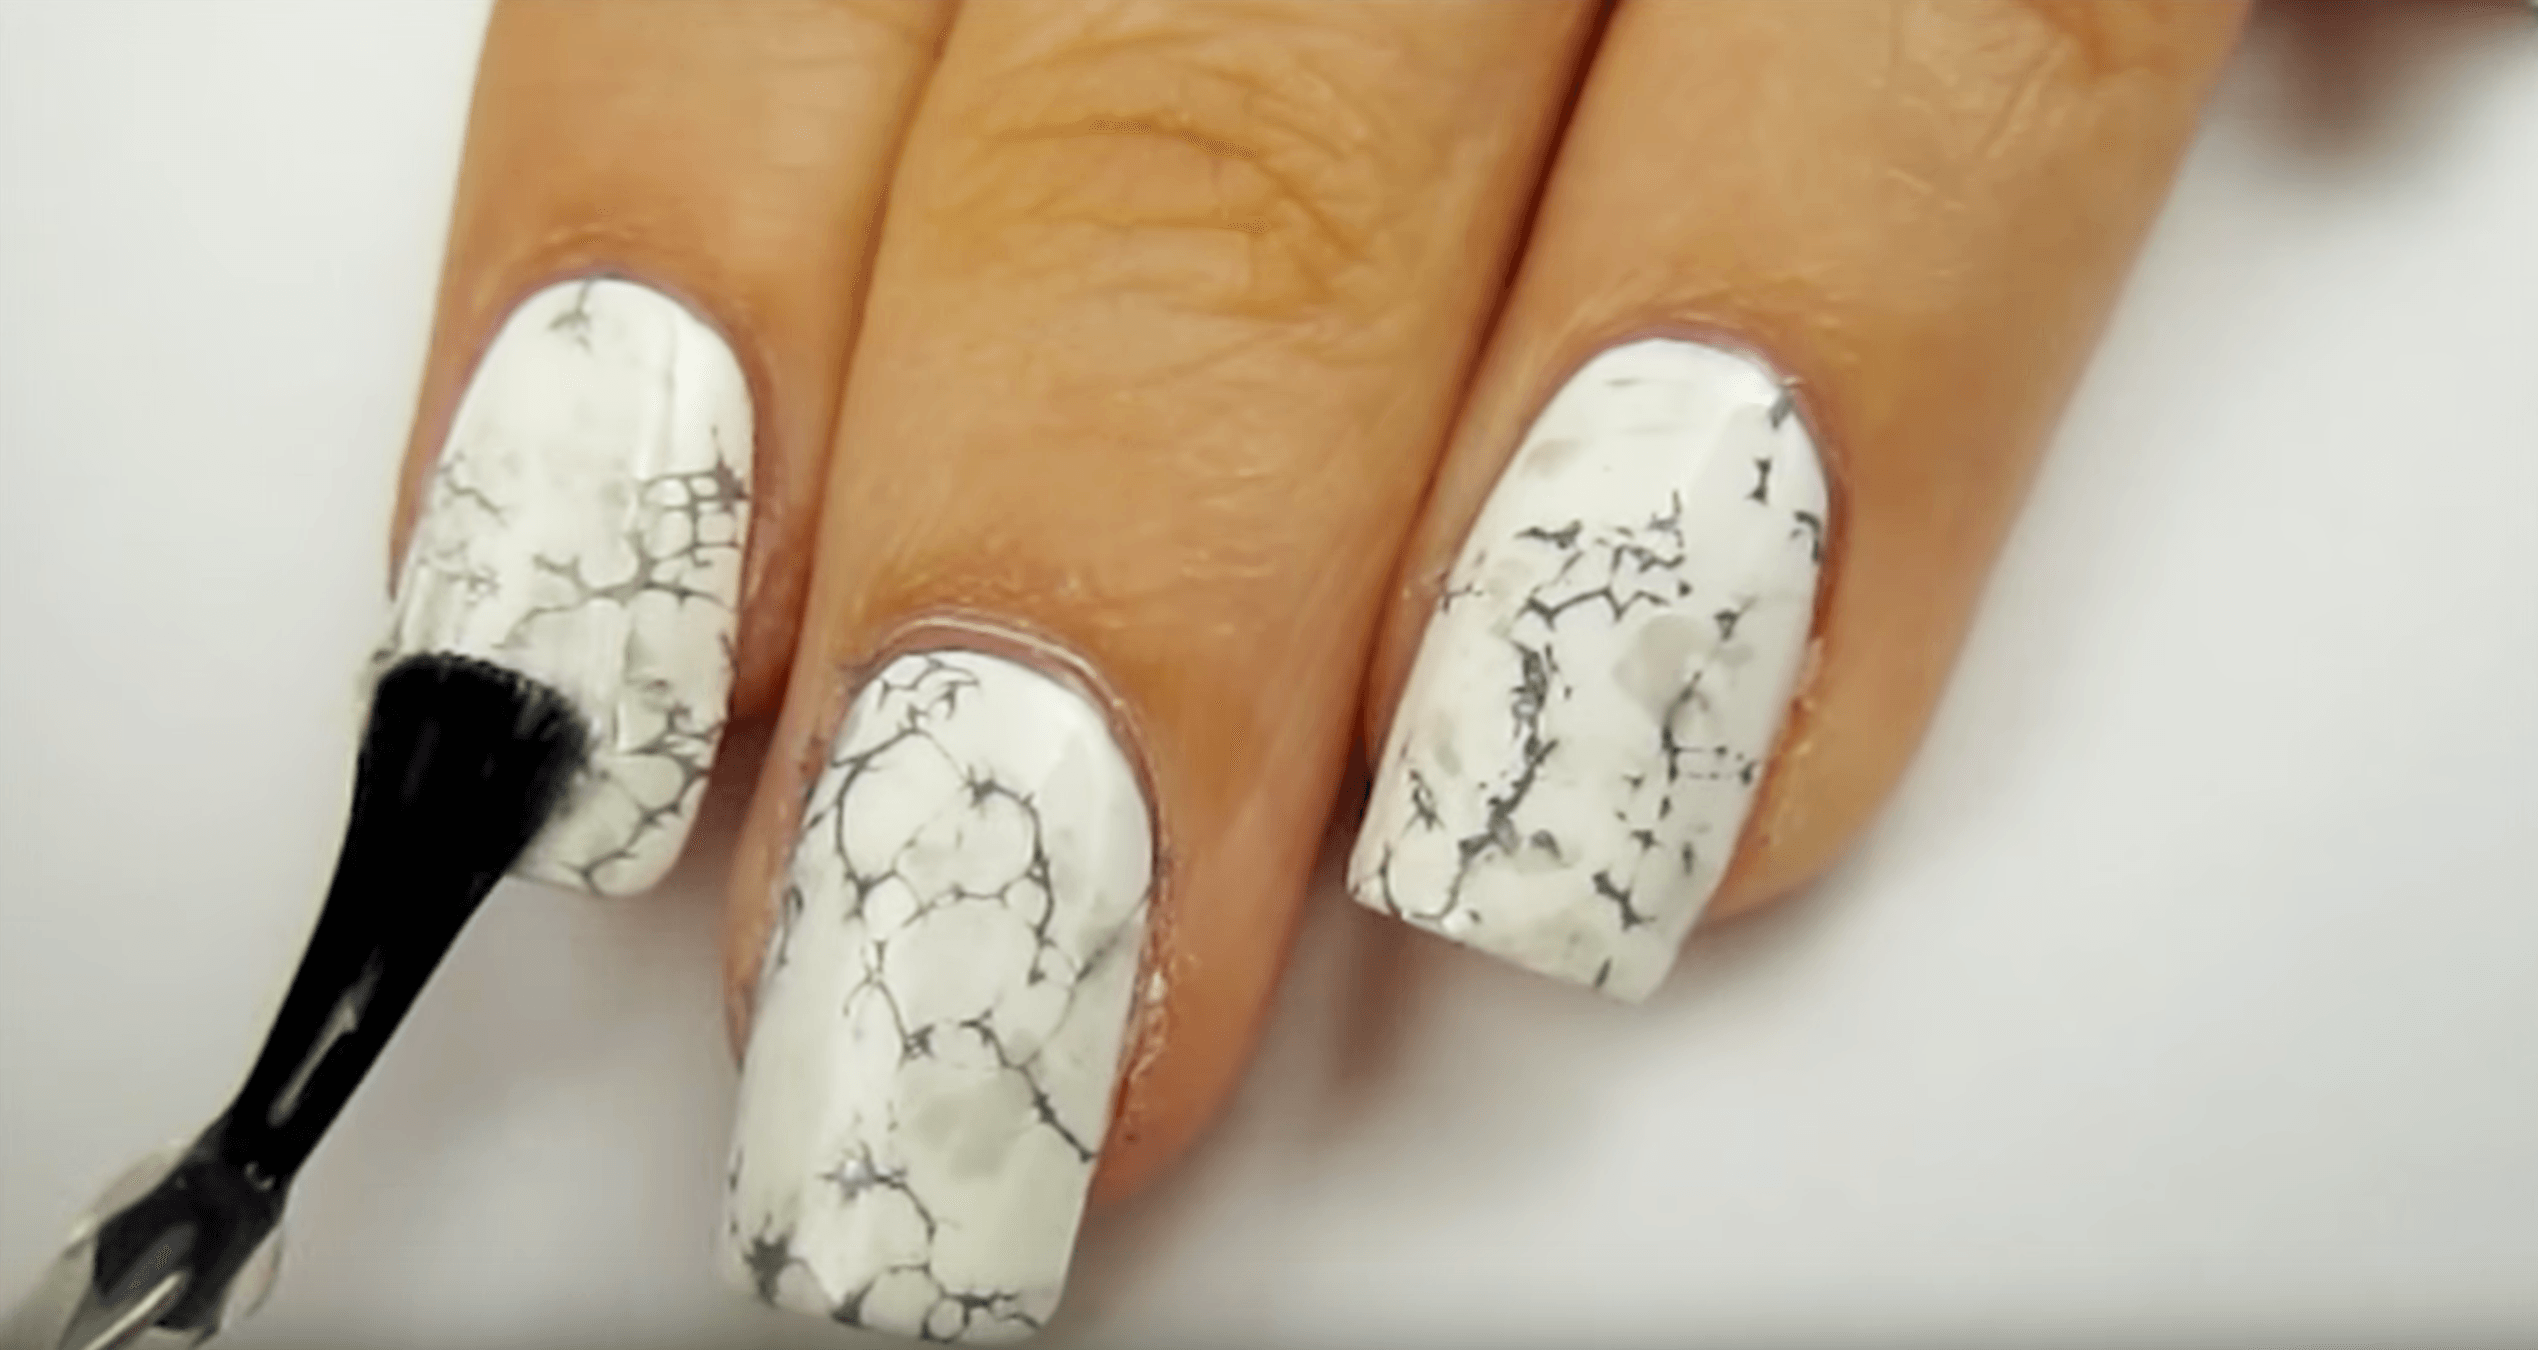 Video: DIY Water Marble Nails | Marble nails tutorial, Water marble ...